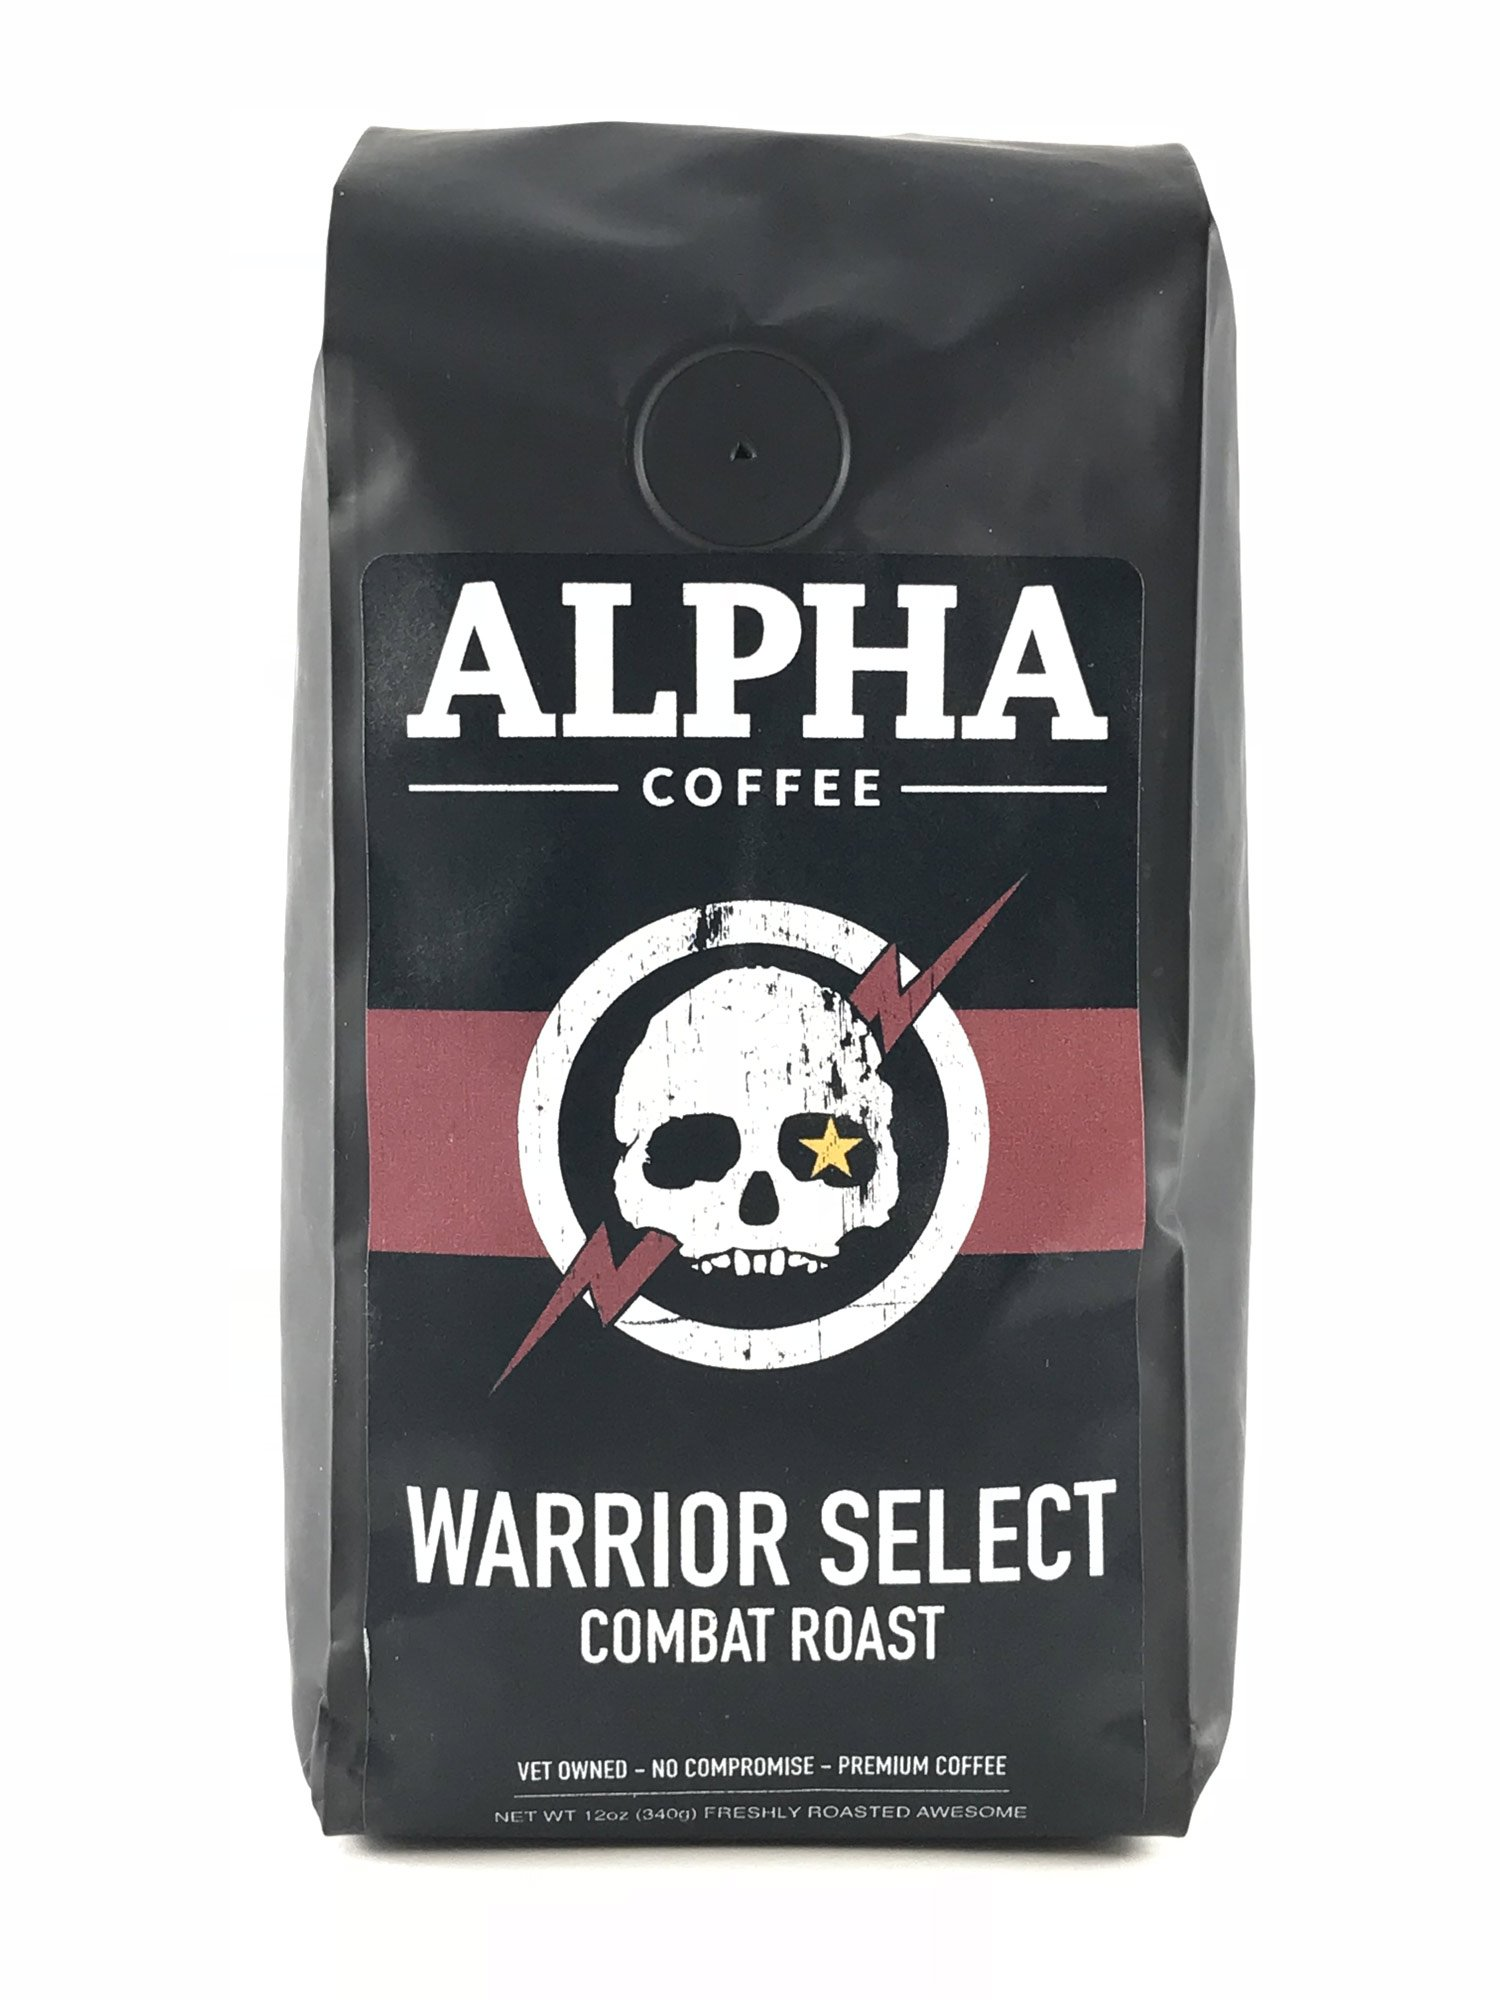 Alpha Coffee, Dark Roast Coffee Beans, 12 oz. Robust Warrior Select Combat Roast, 100% Arabica Coffee, from Central America, Papua New Guinea